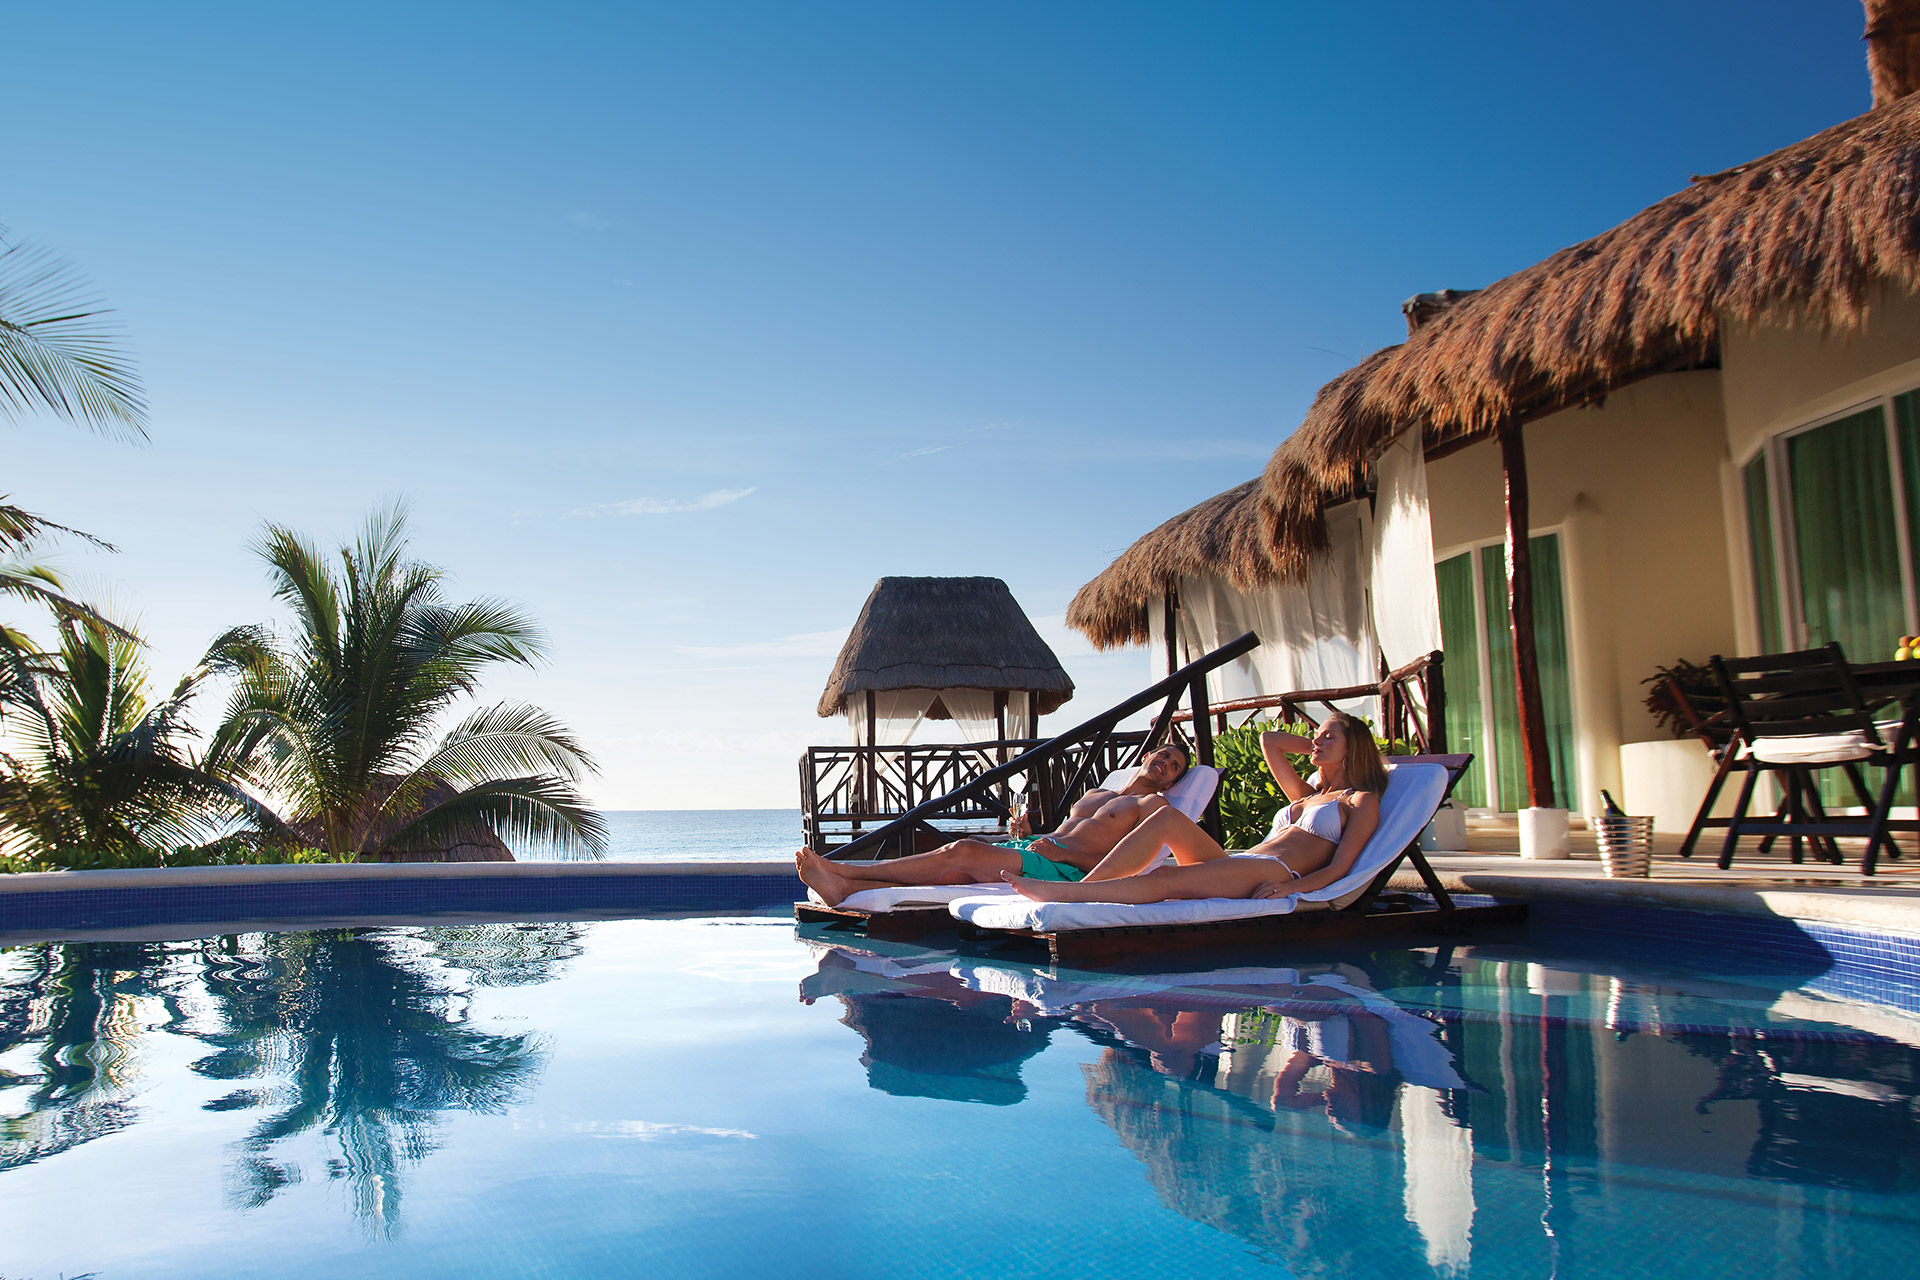 Camino Real Resort Cancun Luxury Gourmet Inclusive Adult Only Resorts In Riviera Maya